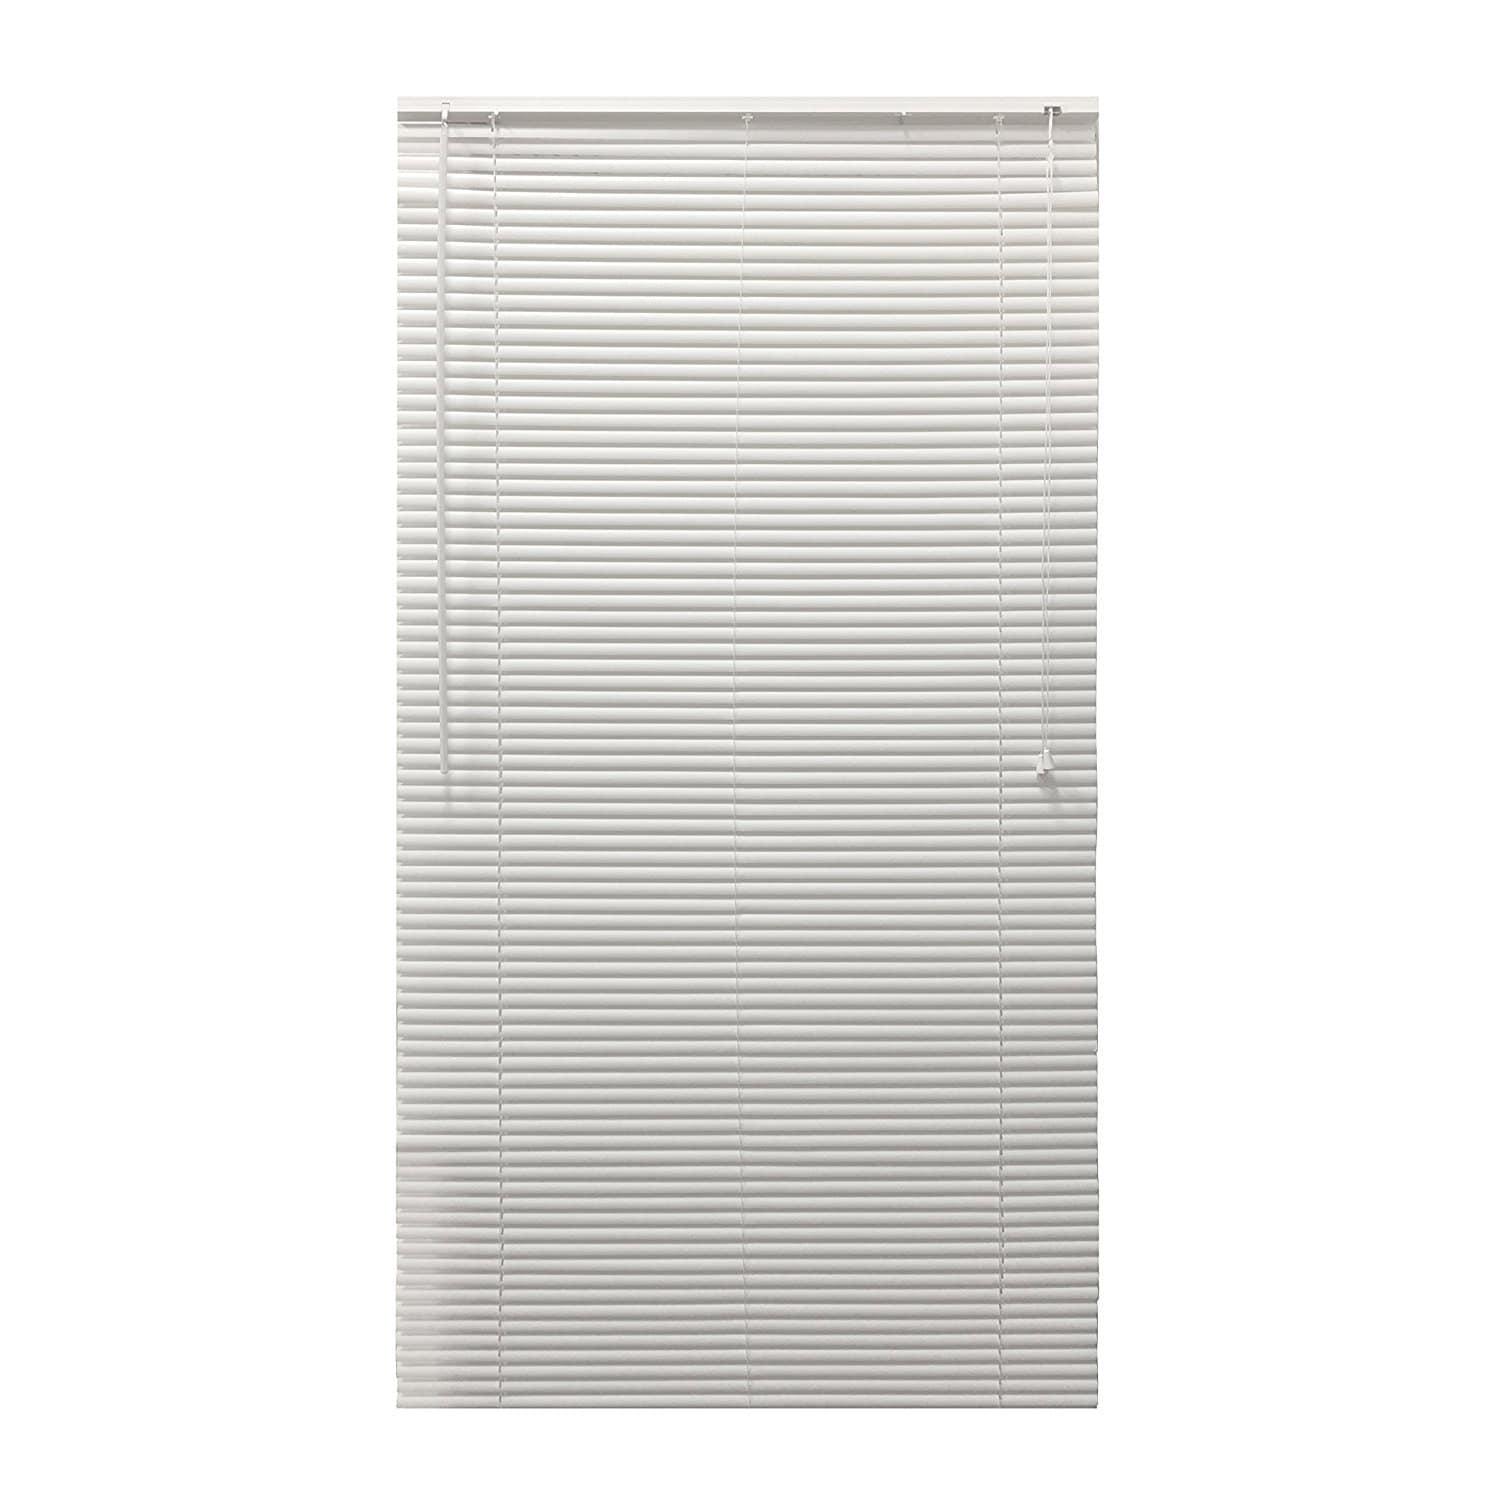 blind best vertical mini curtains glass blinds cordless sliding vinyl walmart your window a wood covering home ideas for inch buy door slats